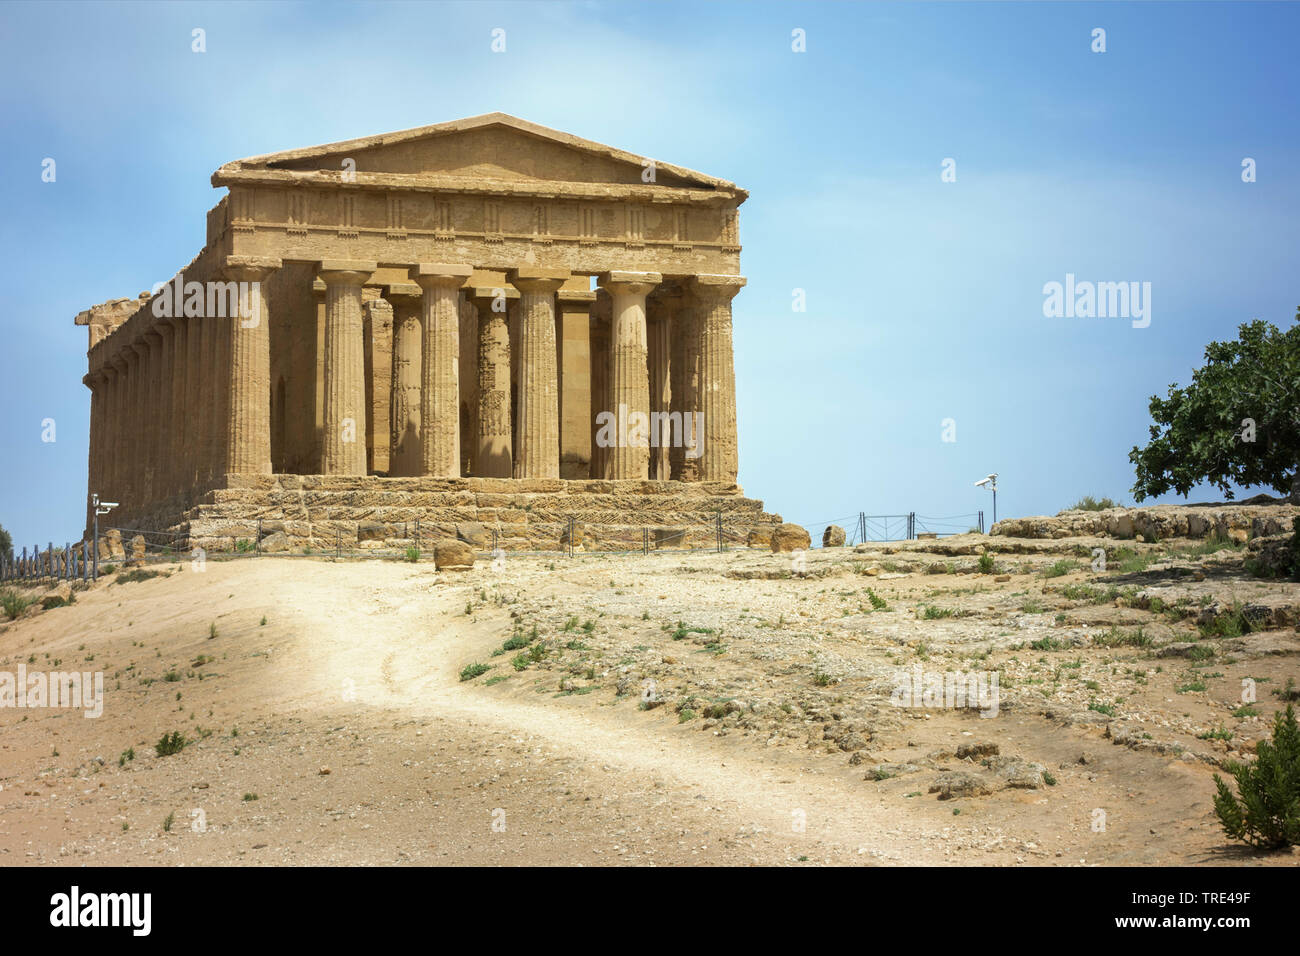 Antiker, griechischer Hera-Tempel in Segesta, Italien, Sizilien | Ancient Greek Doric temple in Segesta, Sicily, Italy, Italy, Sicilia | BLWS516905.jp - Stock Image